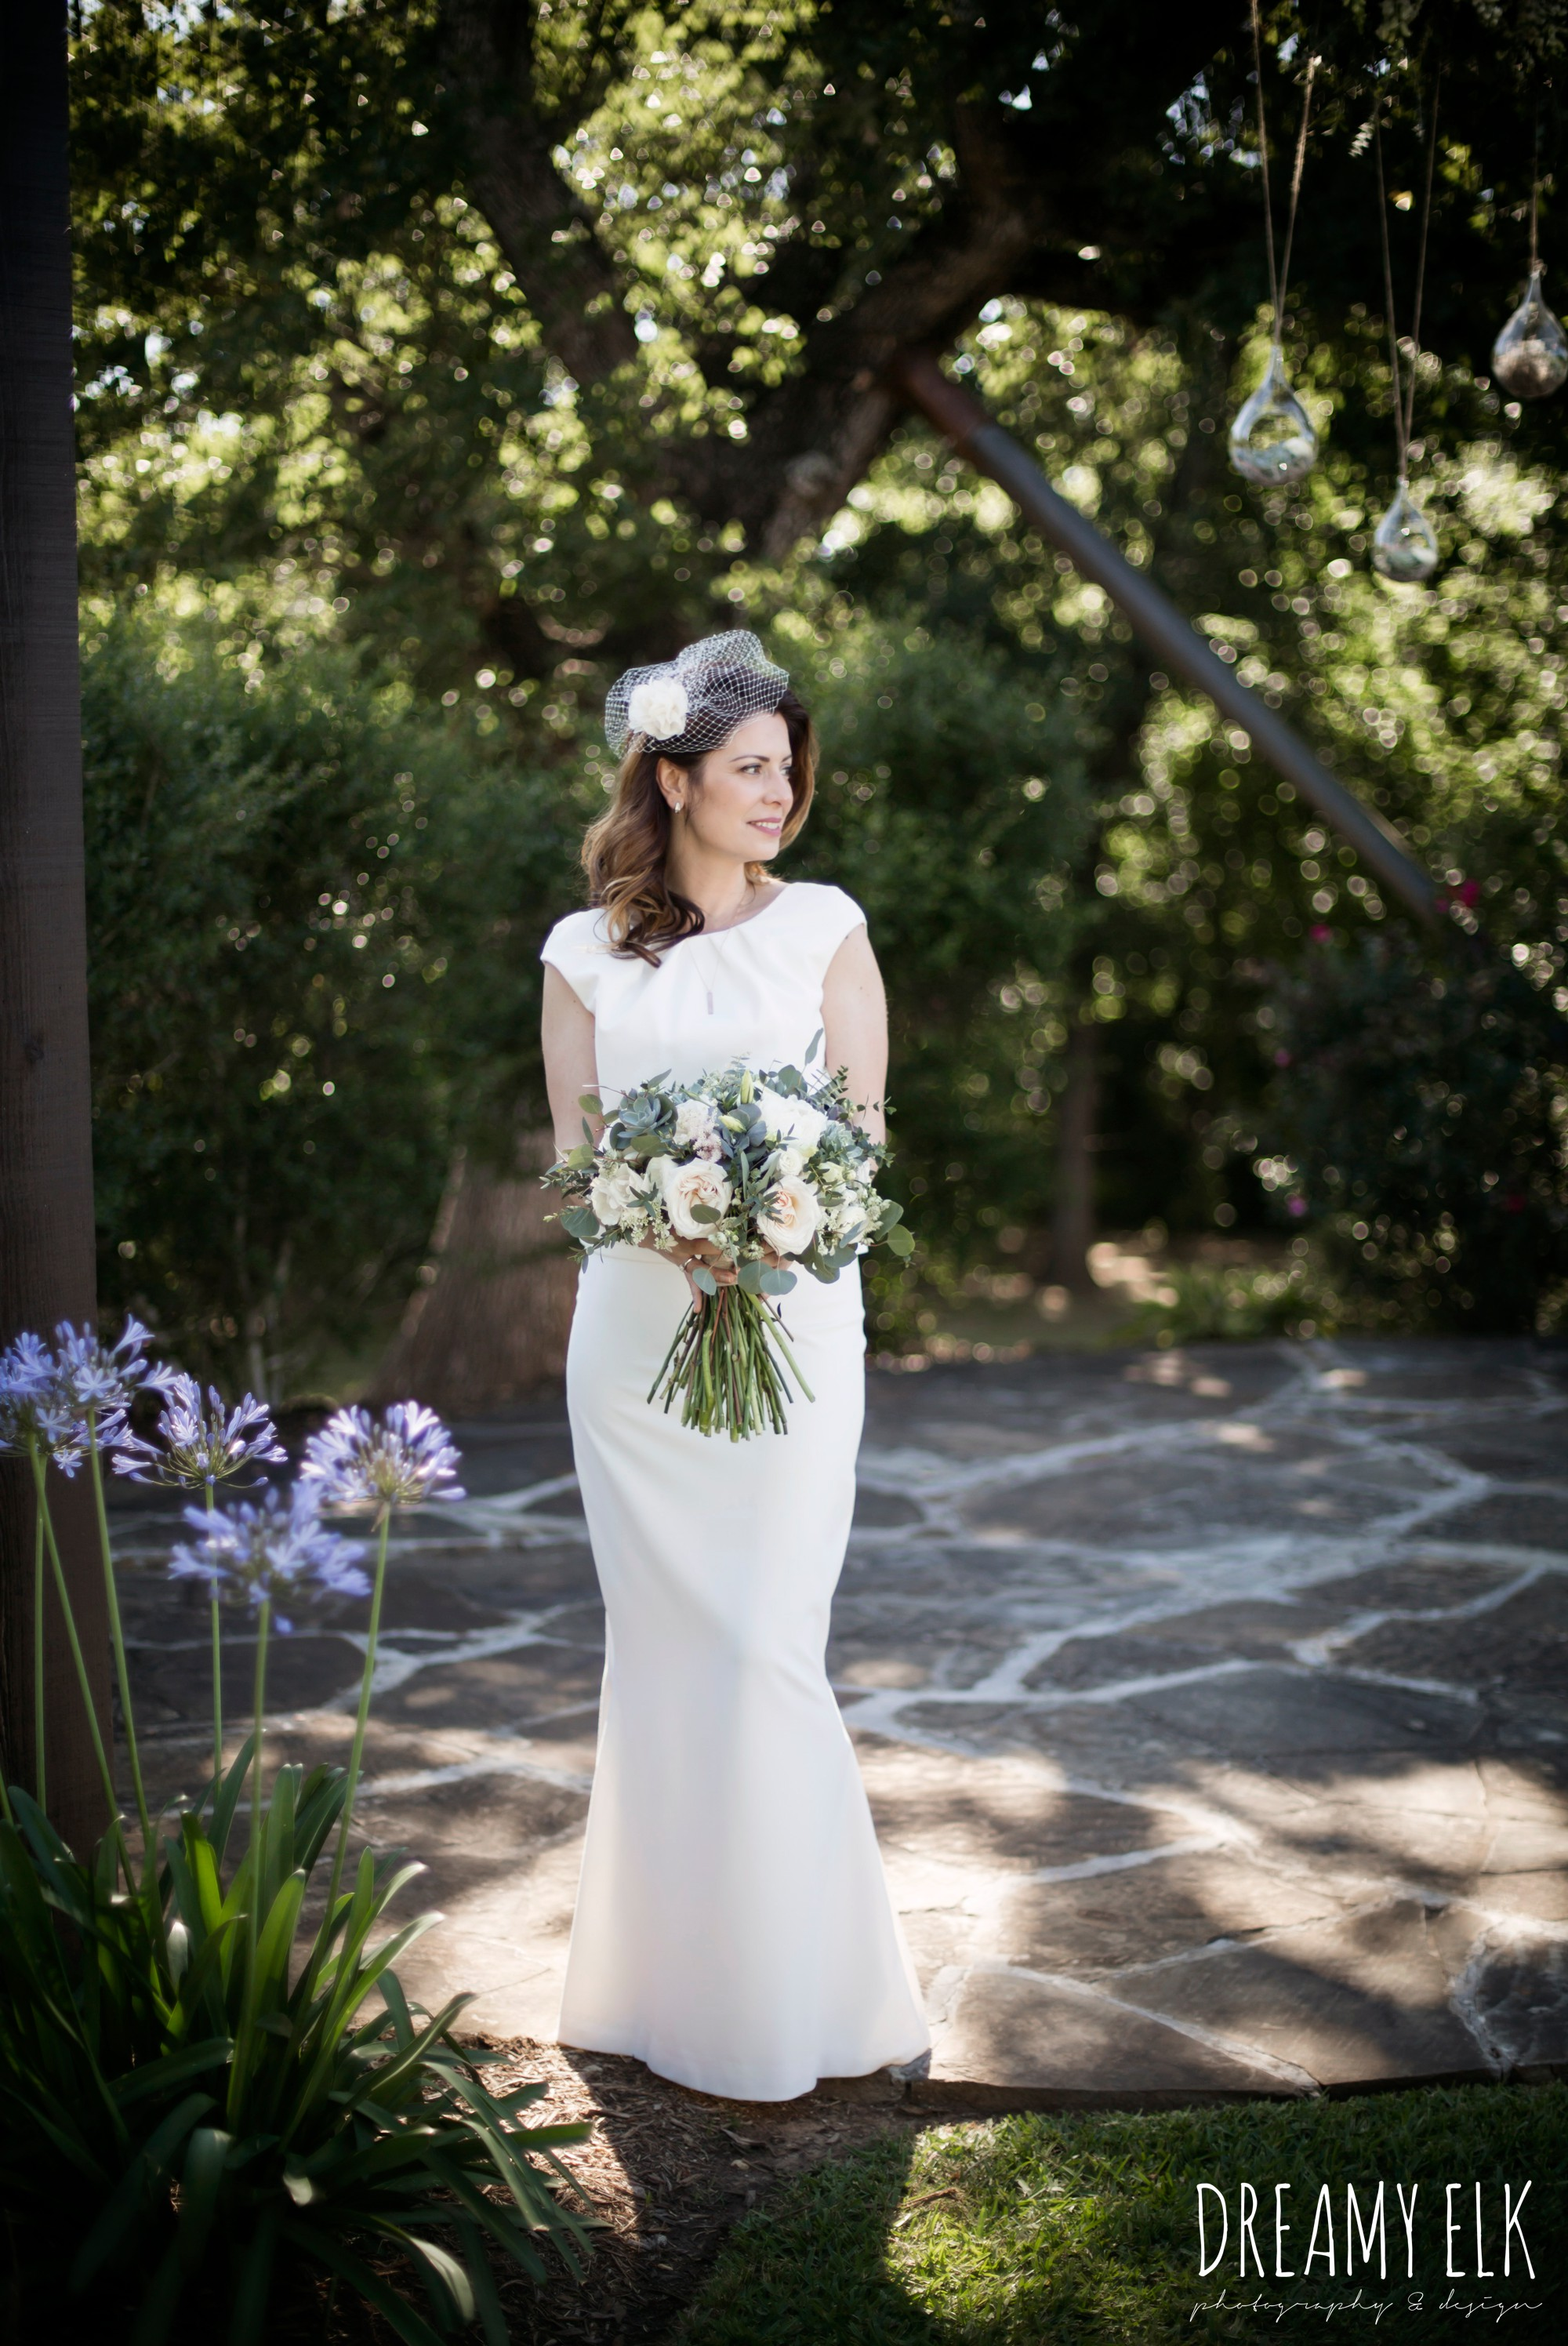 unforgettable floral, white and green succulent wedding bouquet, bride, handmade wedding dress, two piece wedding dress, gray sash, bird cage veil, outdoor april spring wedding photo, double creek crossing, college station, texas, austin wedding photographer {dreamy elk photography and design}